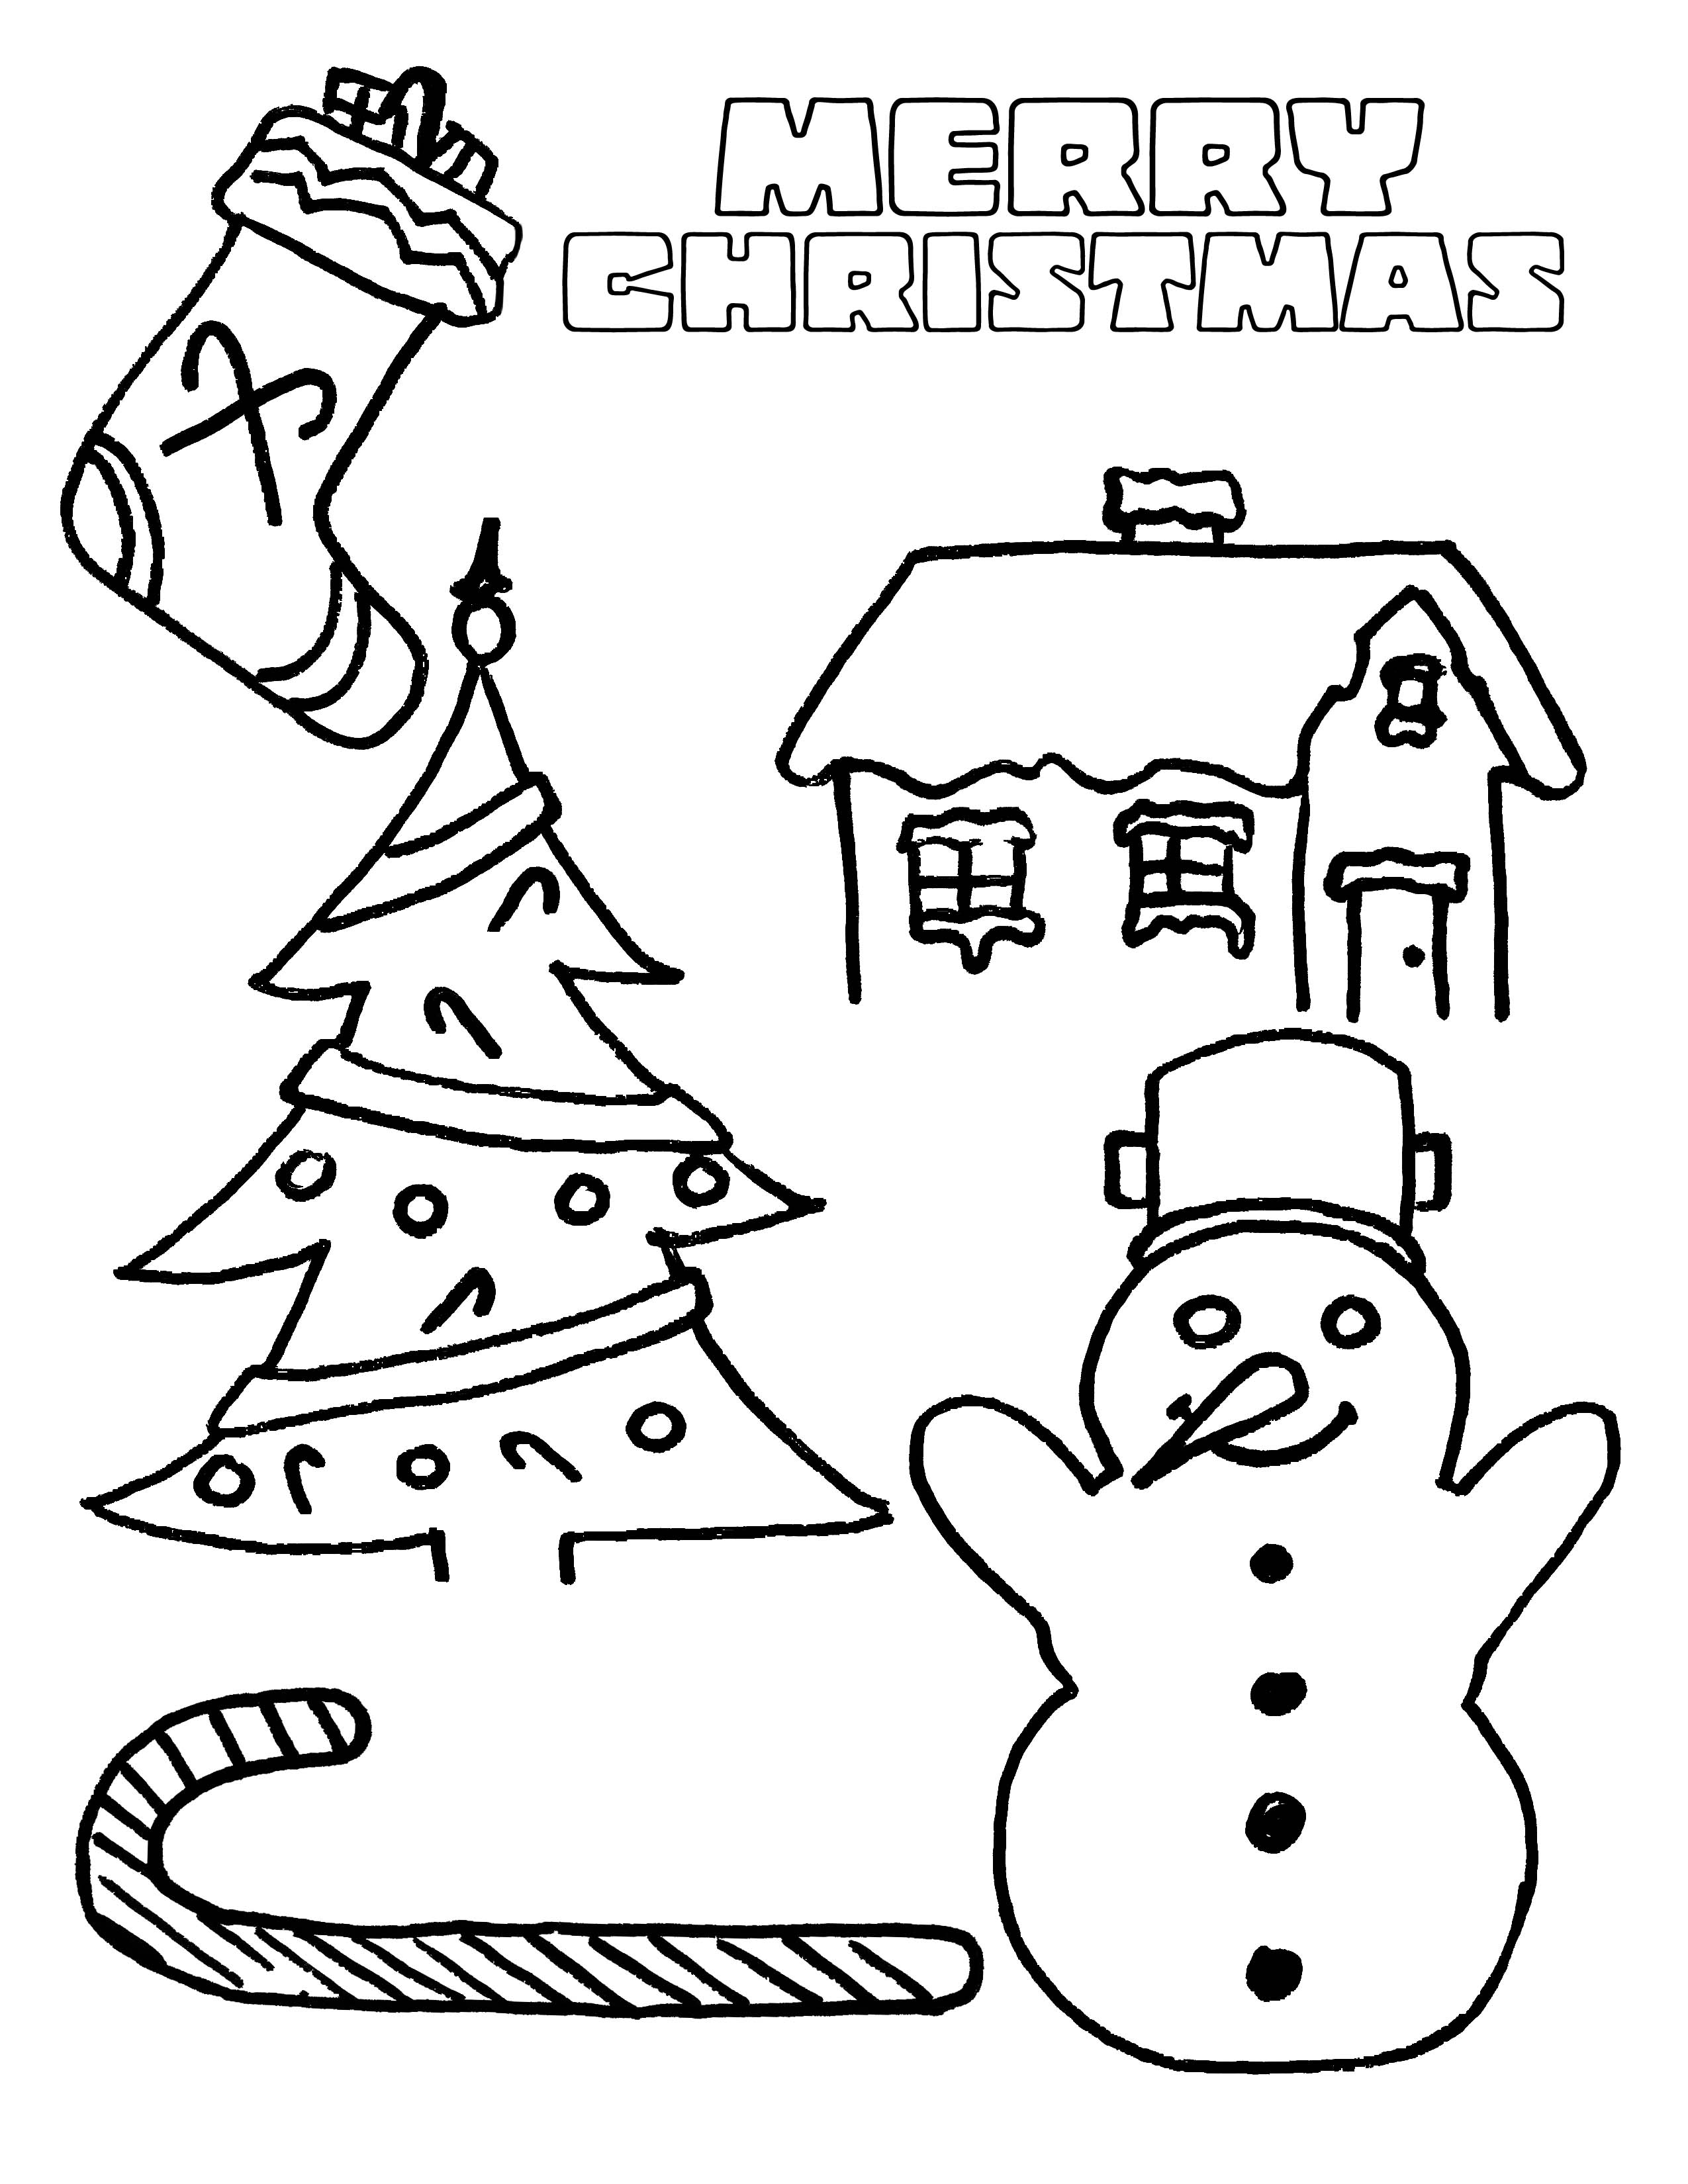 Party simplicity free christmas coloring page for kids for Christmas coloring in pages